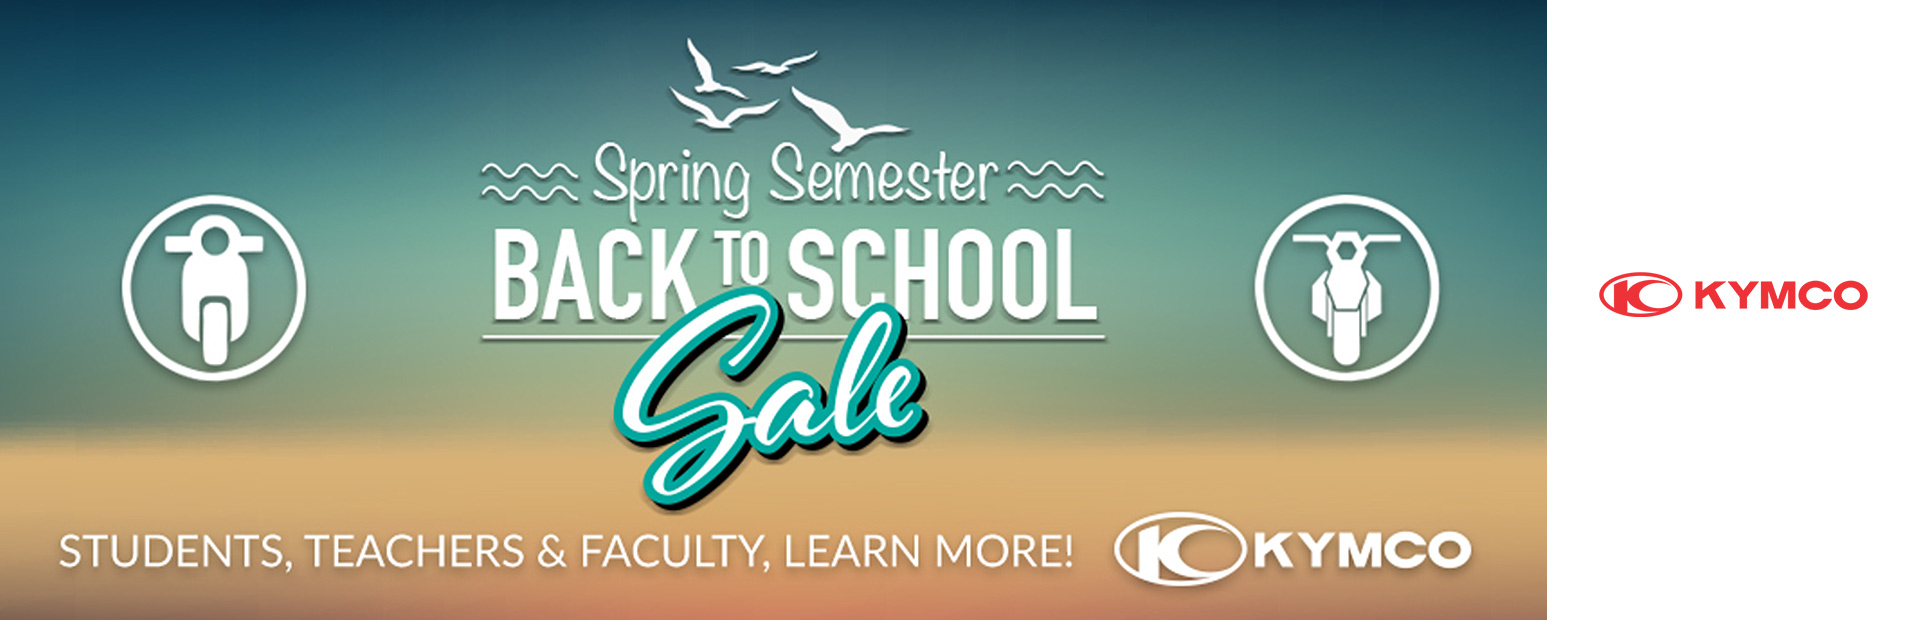 KYMCO: Spring Back to School Sale